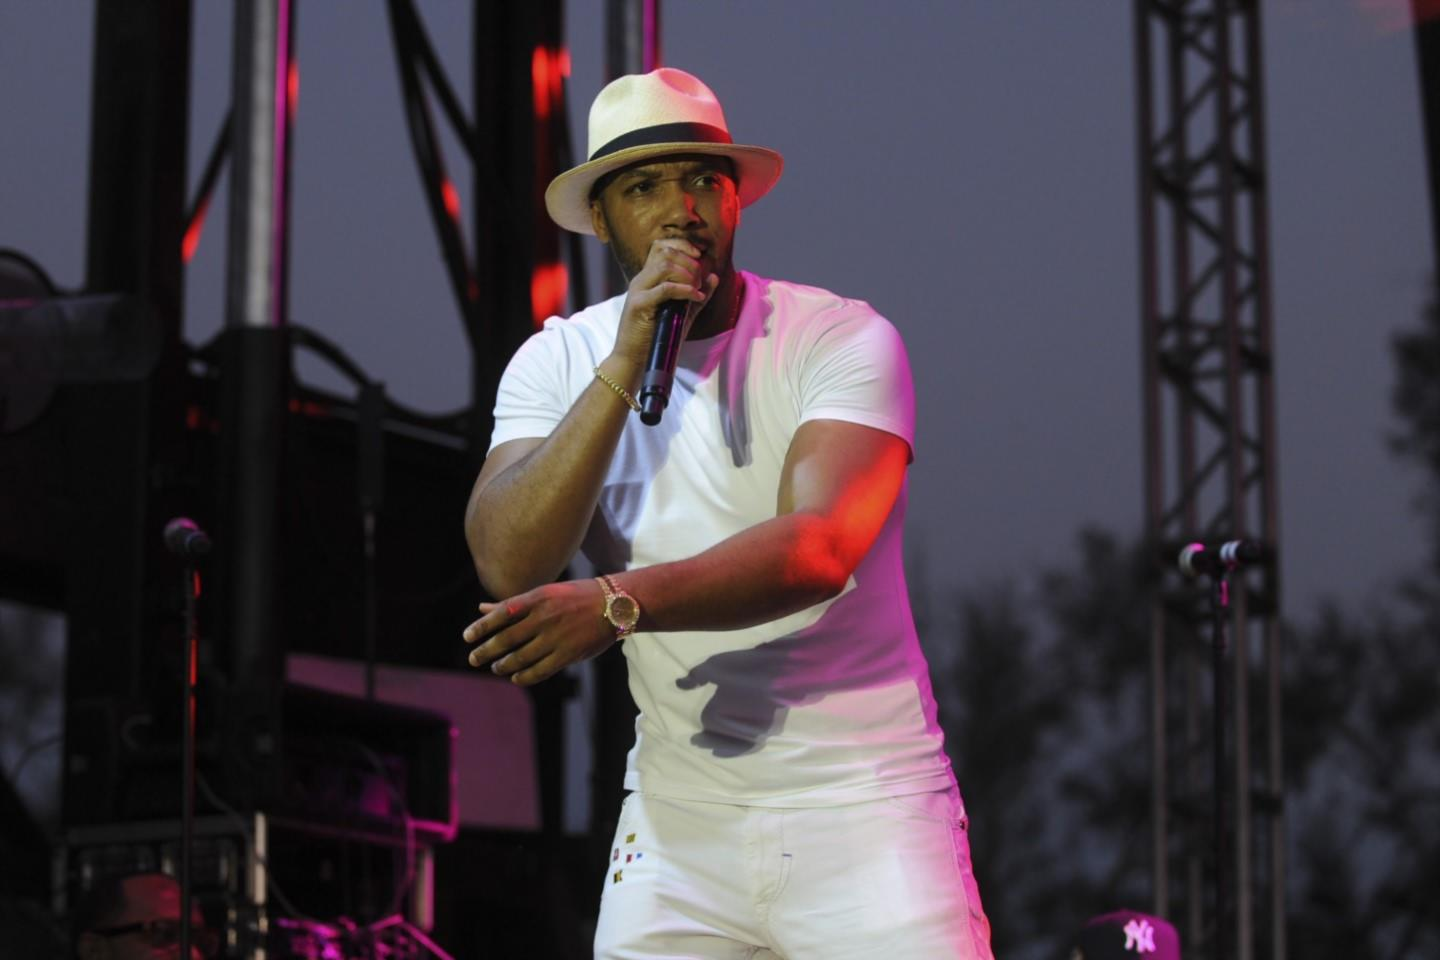 Lyfe Jennings Tour 2020 Lyfe Jennings Tickets | Lyfe Jennings Tour Dates 2020 and Concert